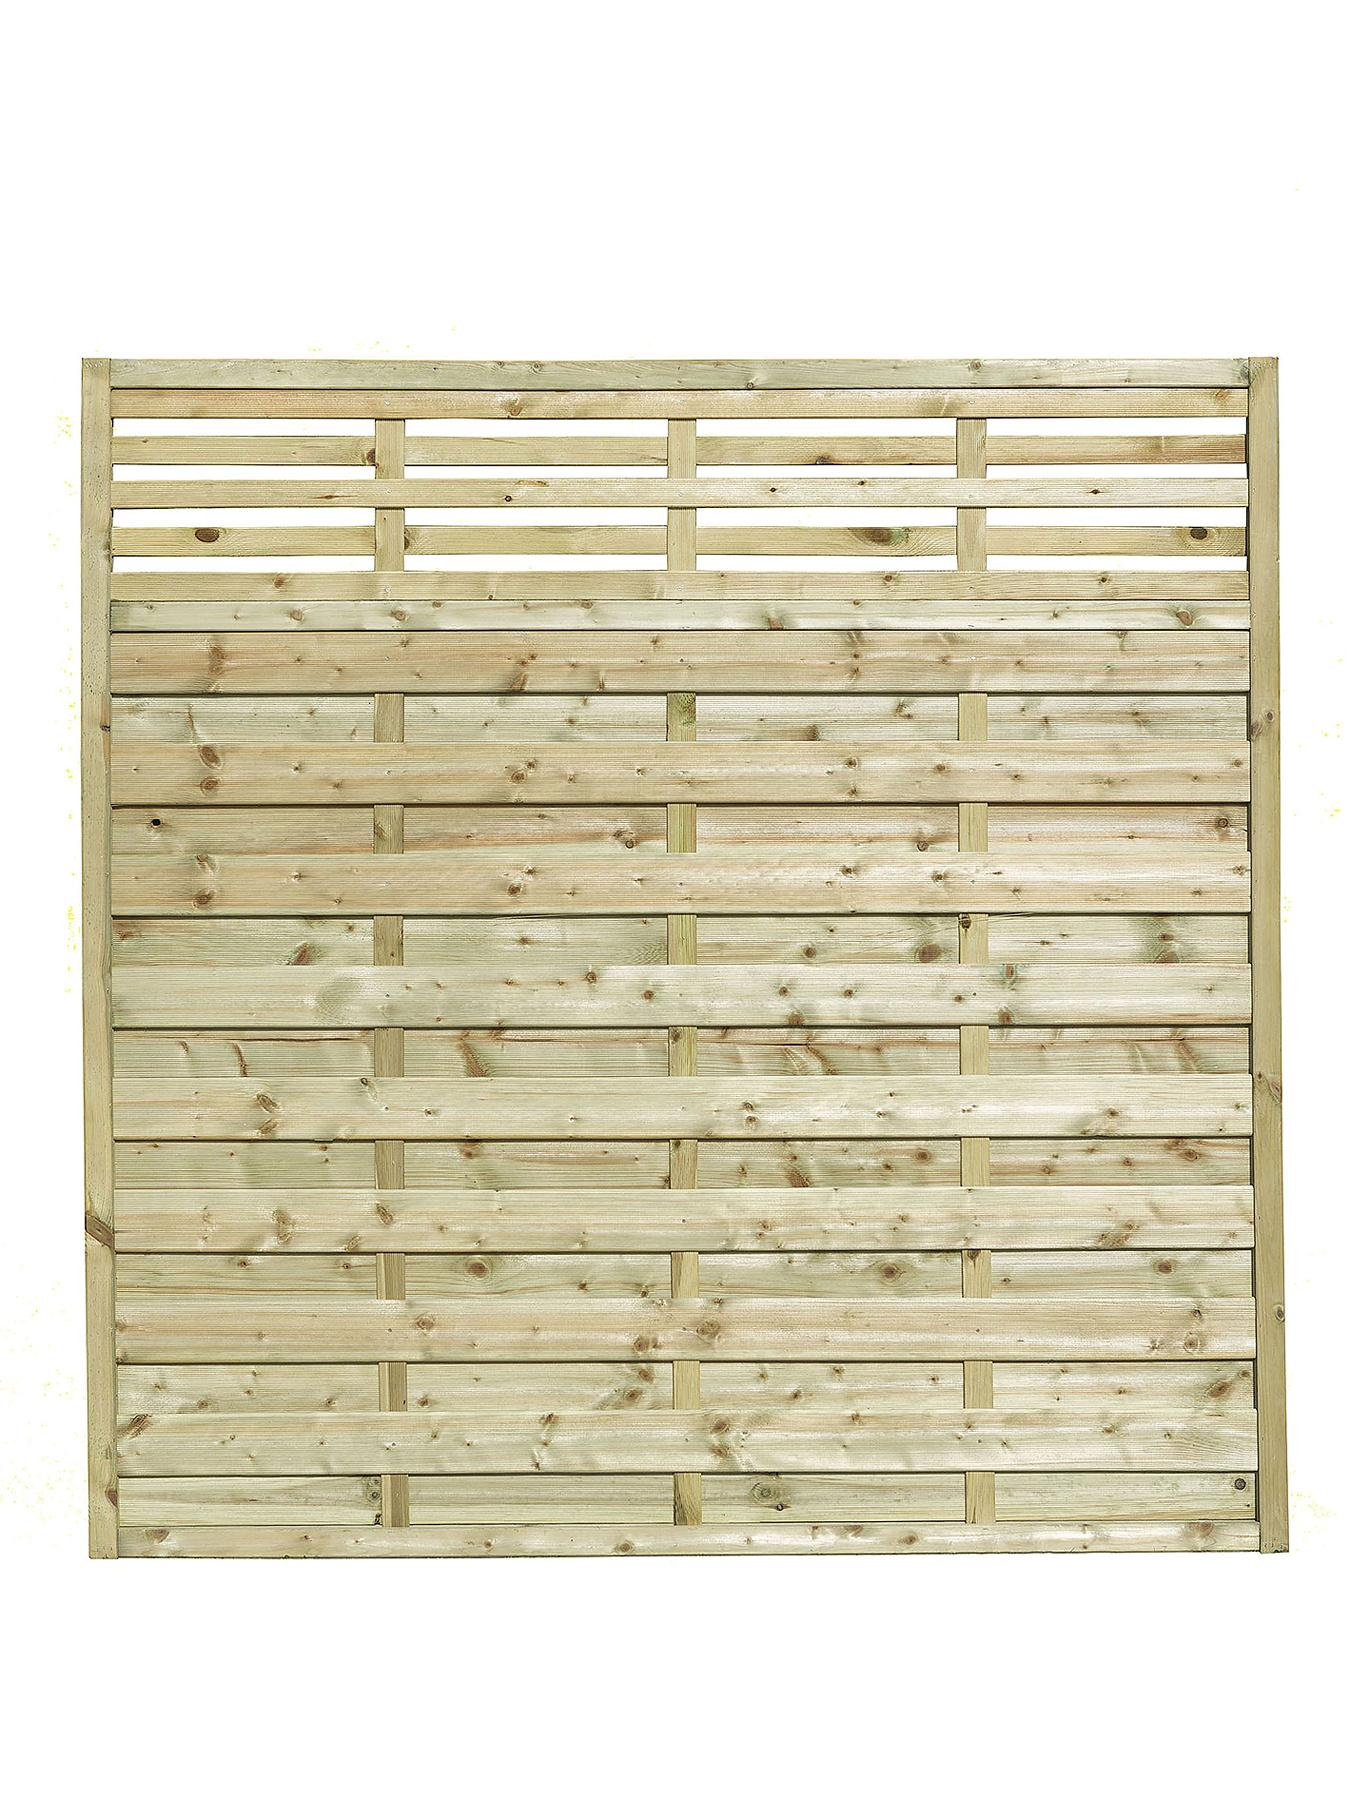 FOREST Garden Kyoto Fence Panels 1.8 x 1.8m High (3 Pack)